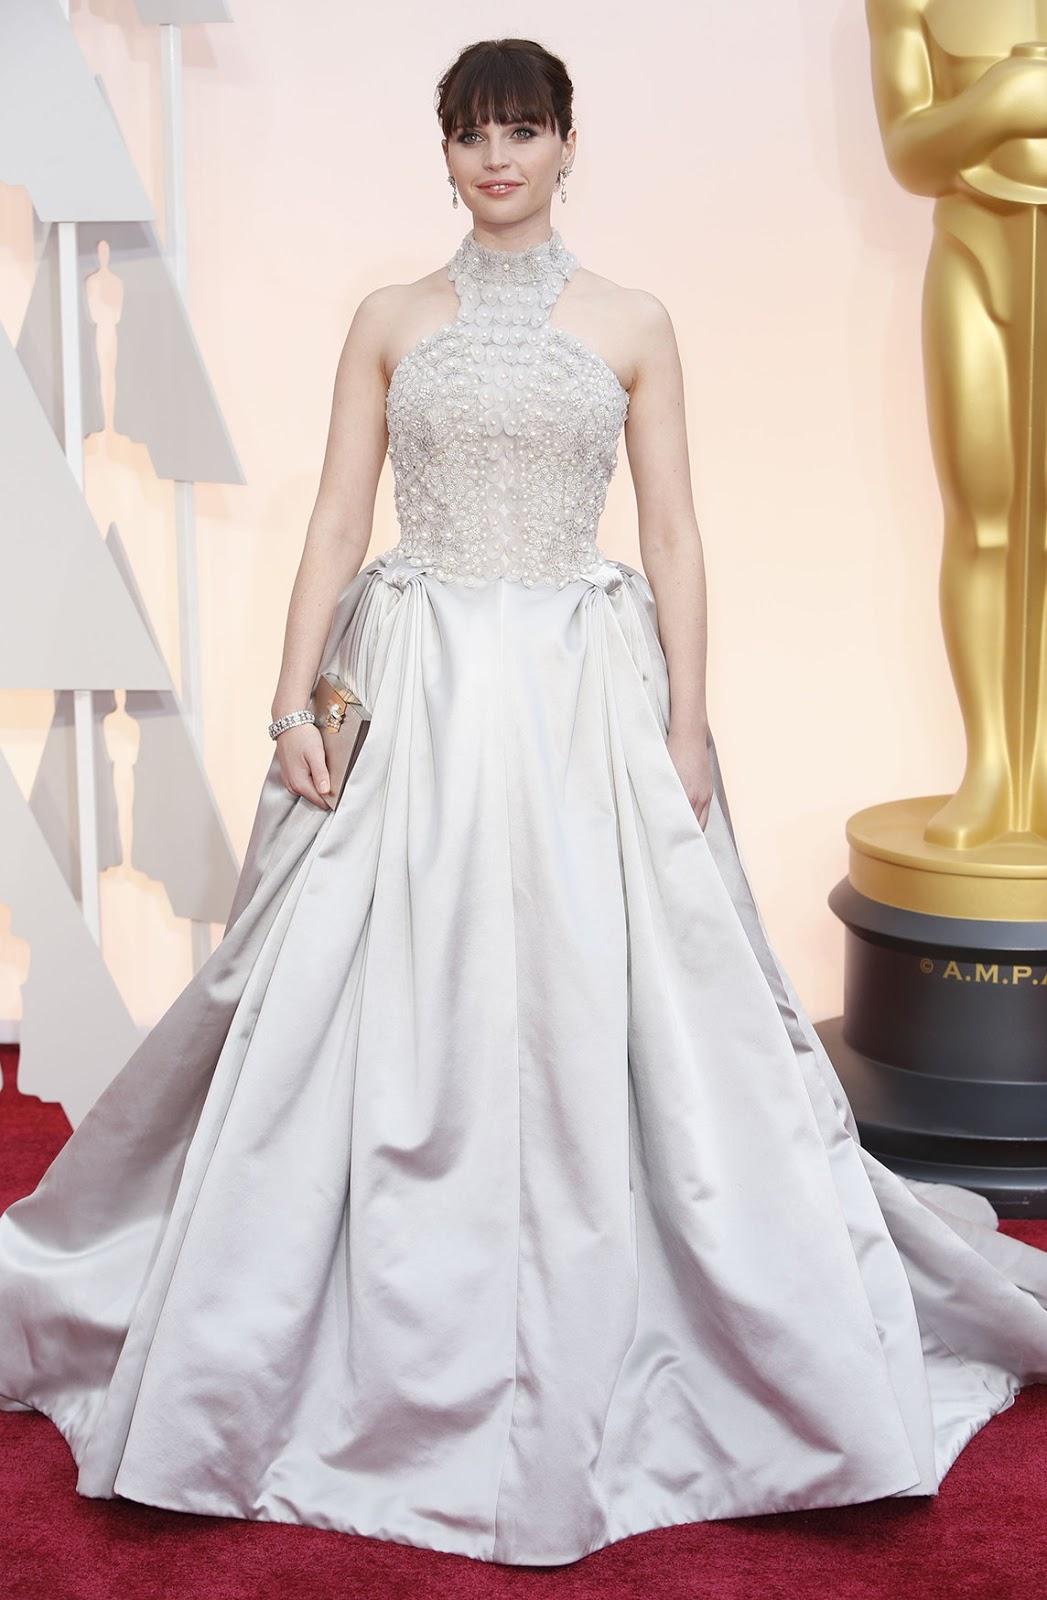 Felicity Jones in Alexander Mcqueen at the Oscars 2015